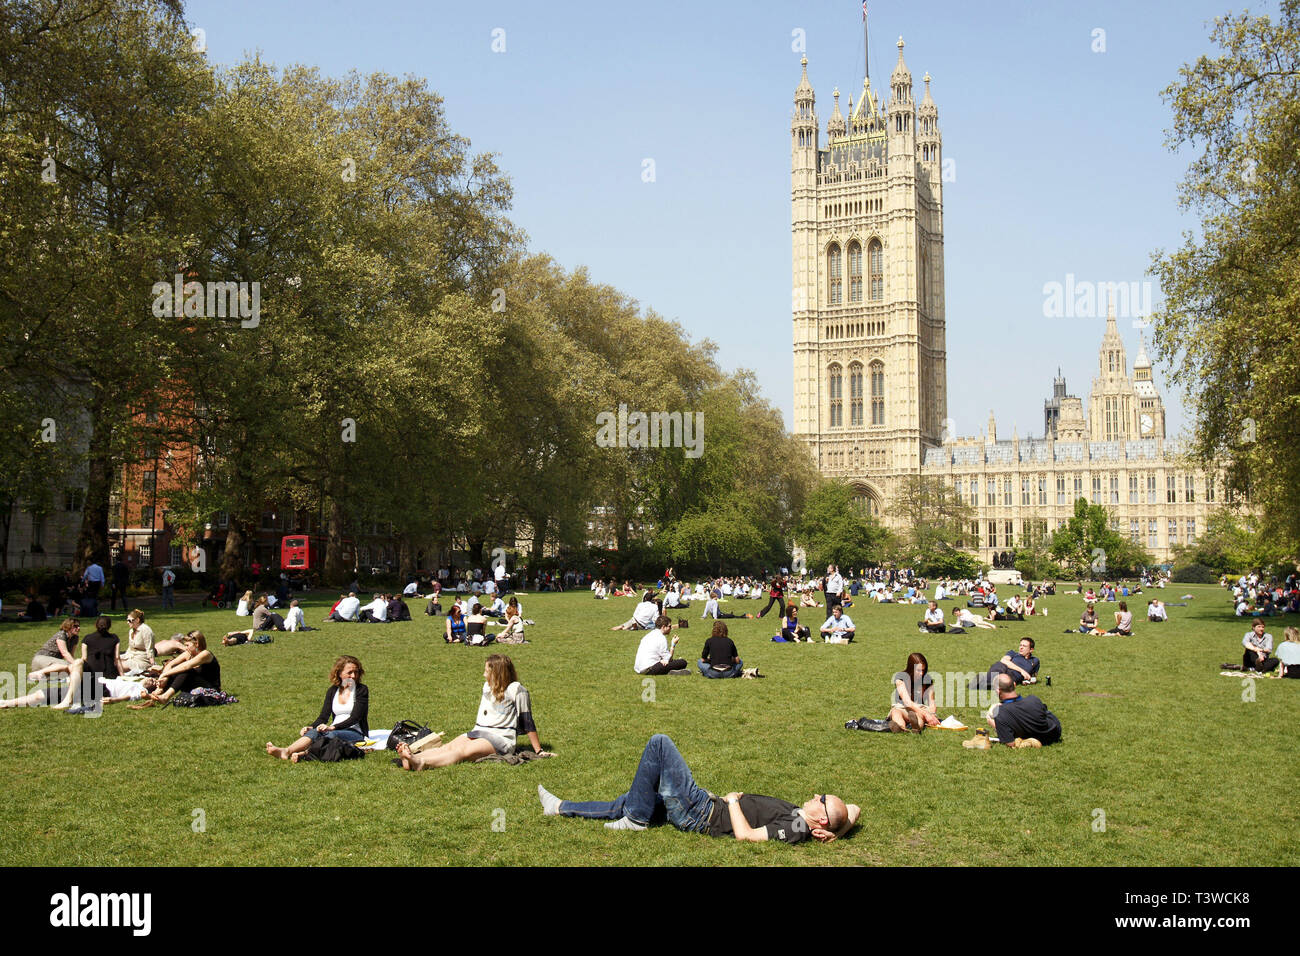 A sunny day at Victoria Tower Gardens in Westminster. People enjoying the hot weather, London. 20.4.2011 - Stock Image